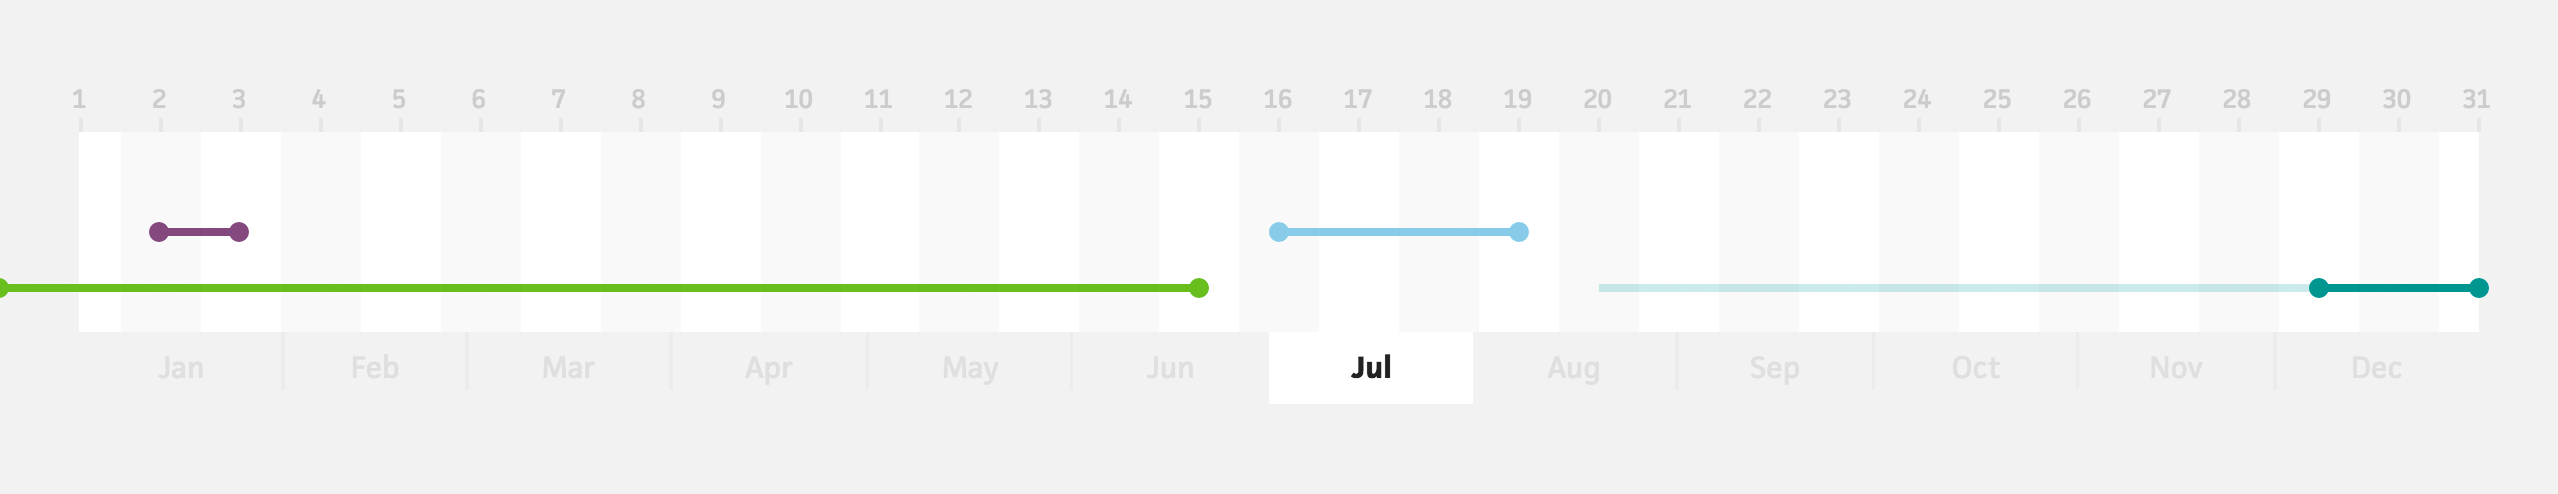 2014-10-16-timeline-month-view